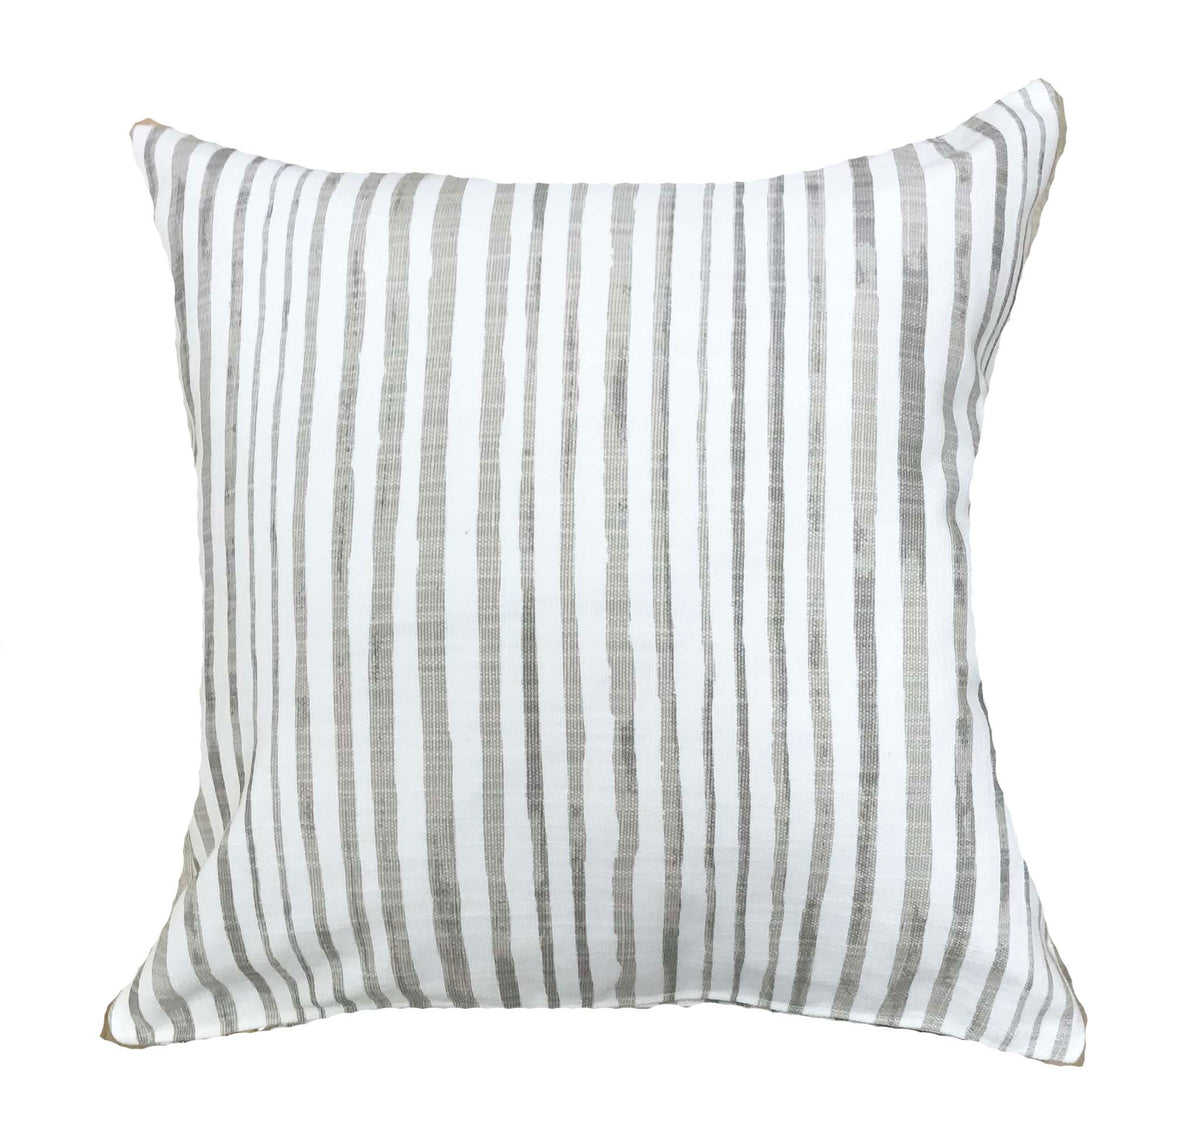 Stylish neutral pillows with luxe linen OMAR